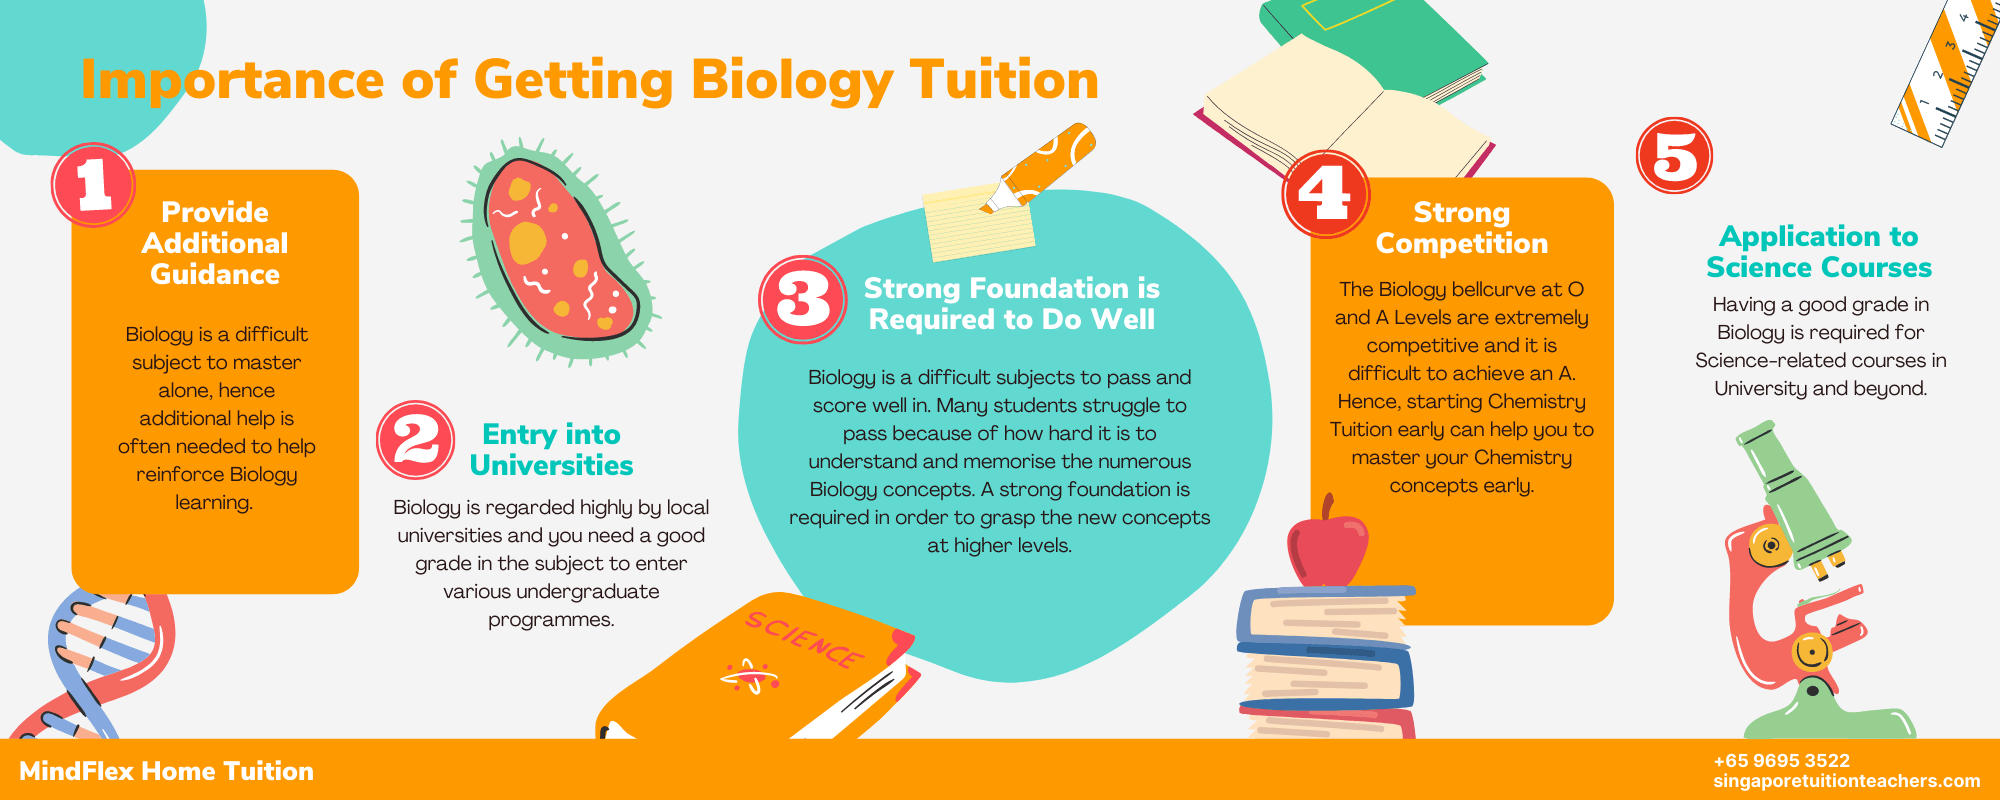 Infographic on Importance of Biology Tuition